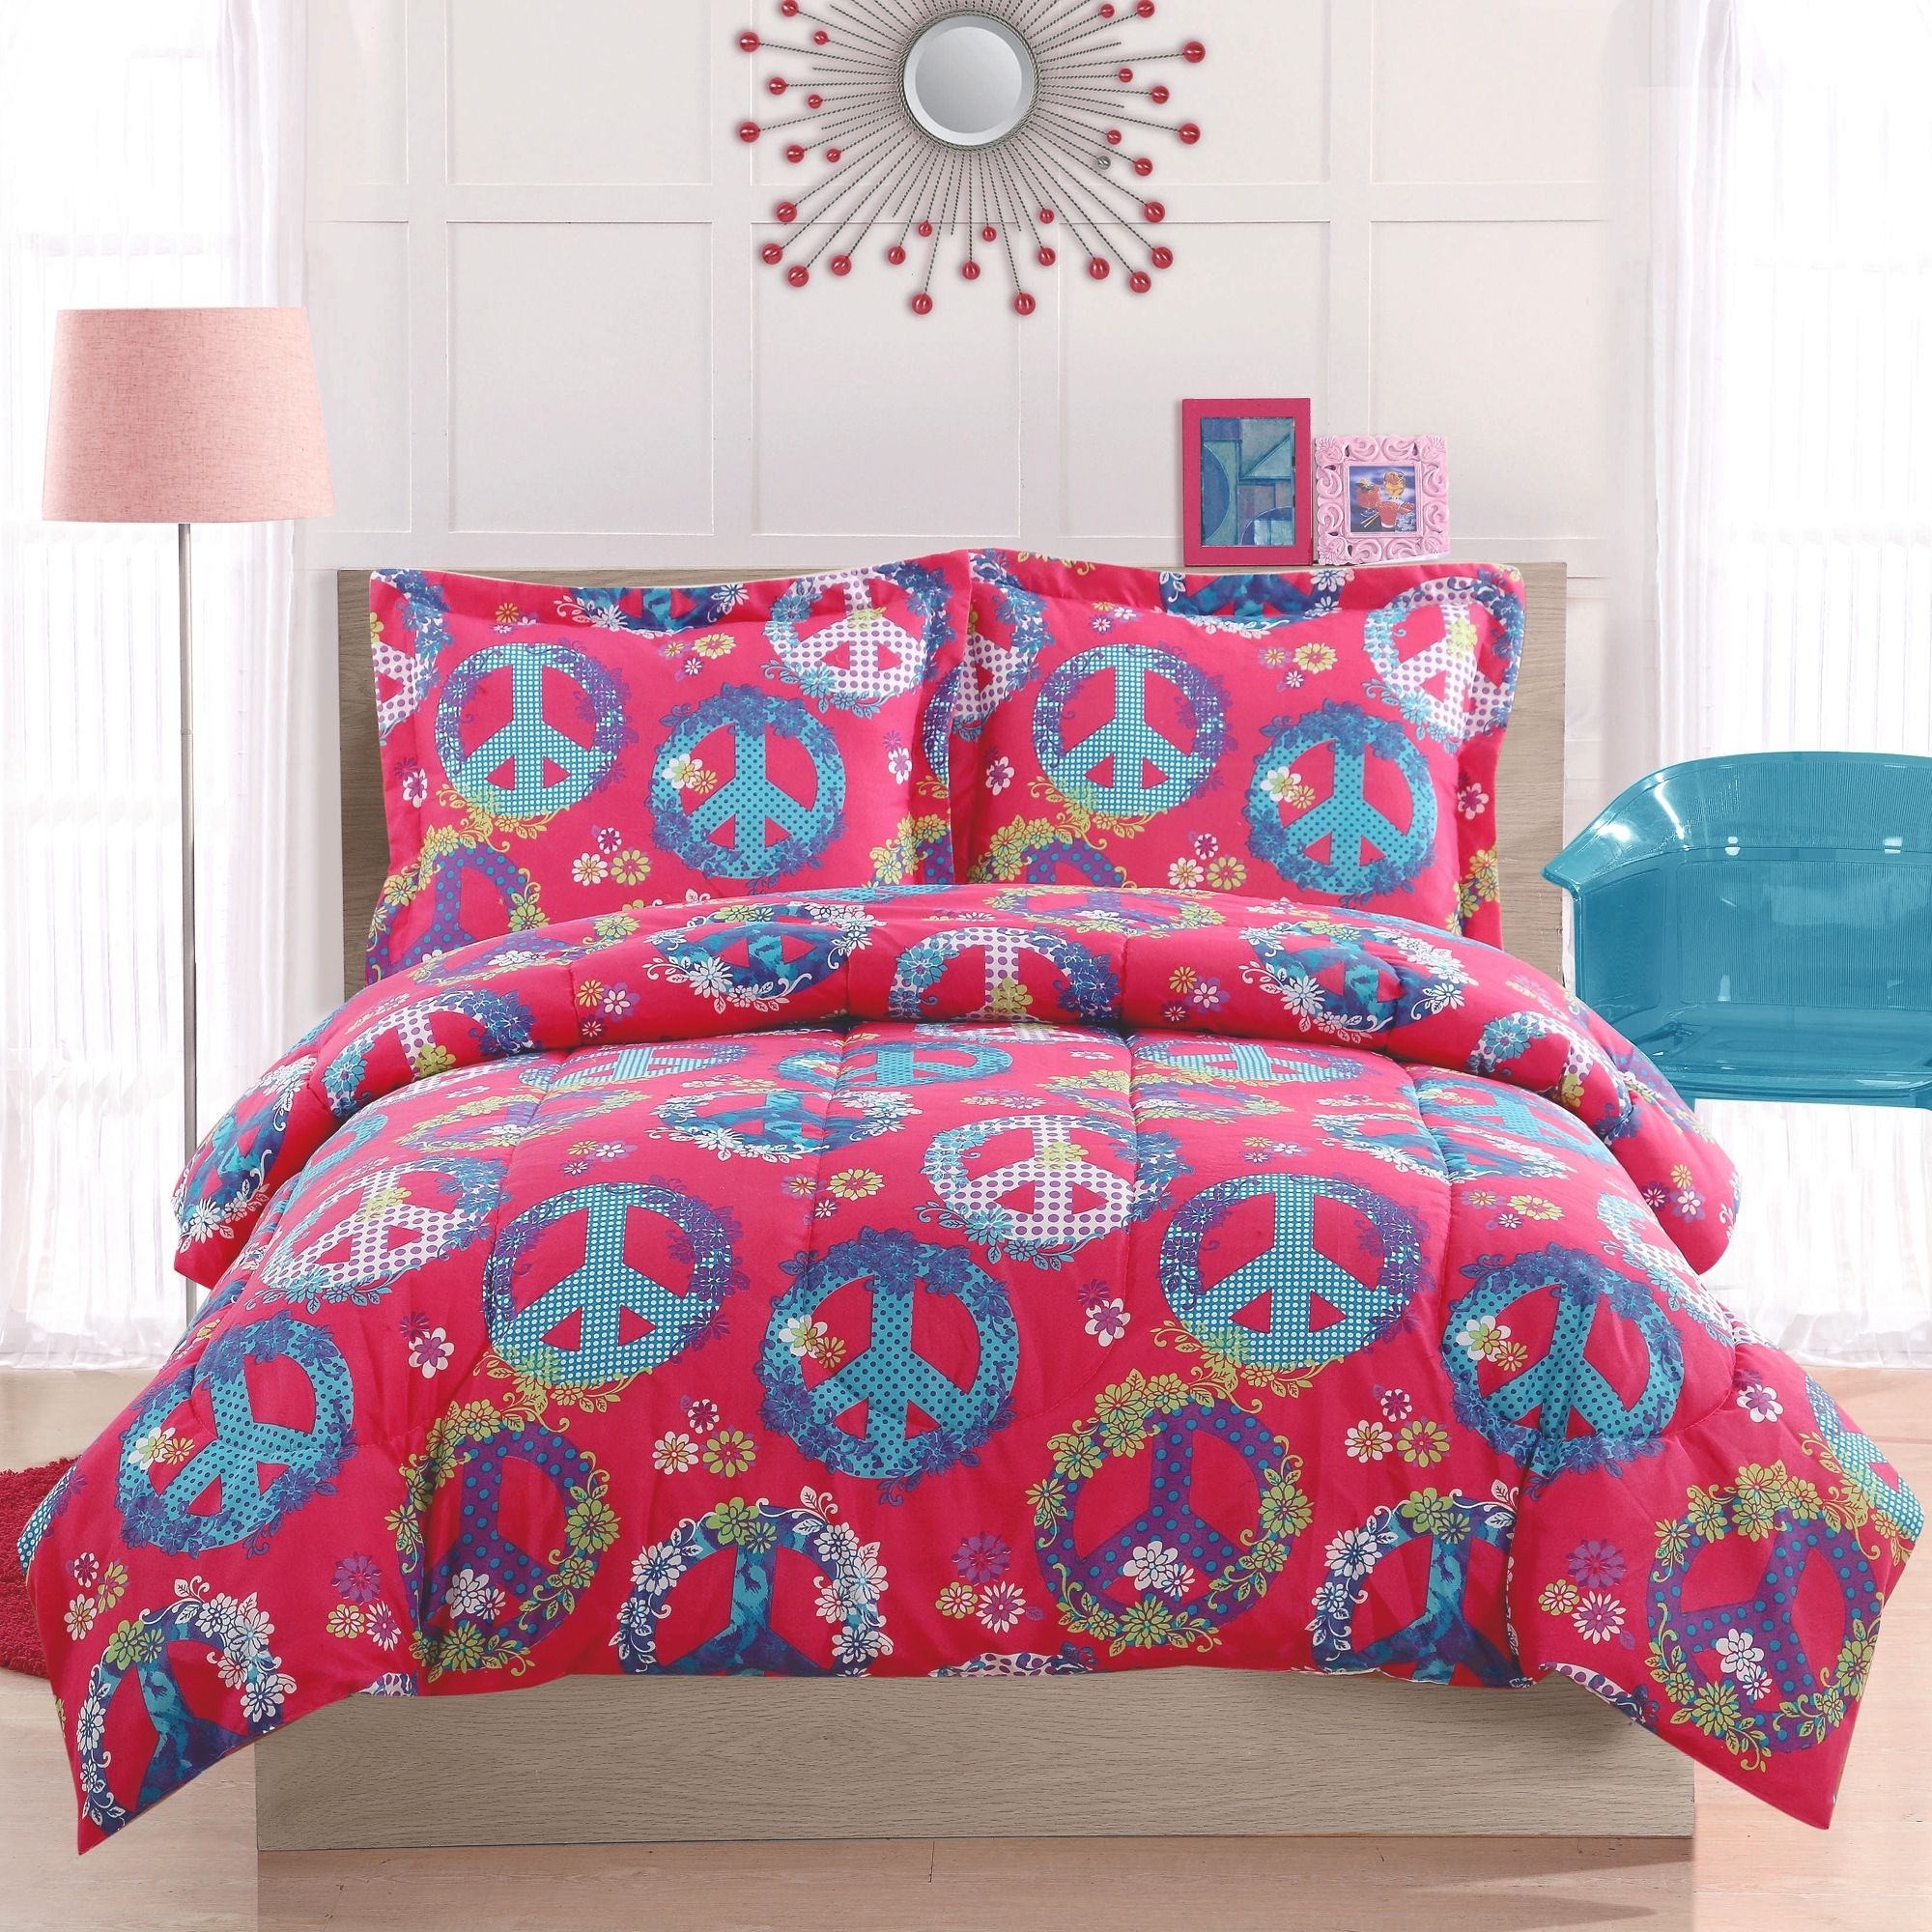 Genial Cosmo Girl Peace Sign Pink Comforter Set|Teen Girls Peace Sign  Bedding|Little Girls